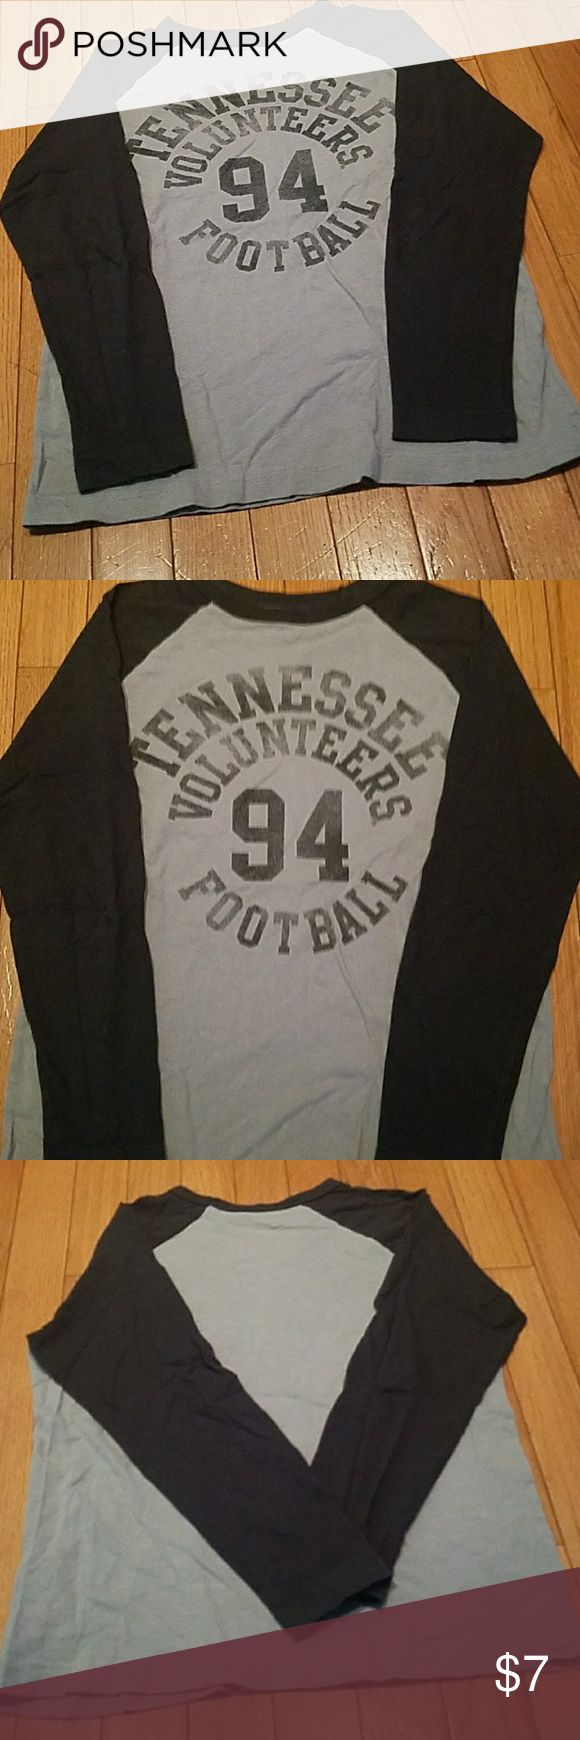 Tennessee Football T-shirt Boys Youth Gray University of Tennessee T-shirt Shirts & Tops Tees - Long Sleeve